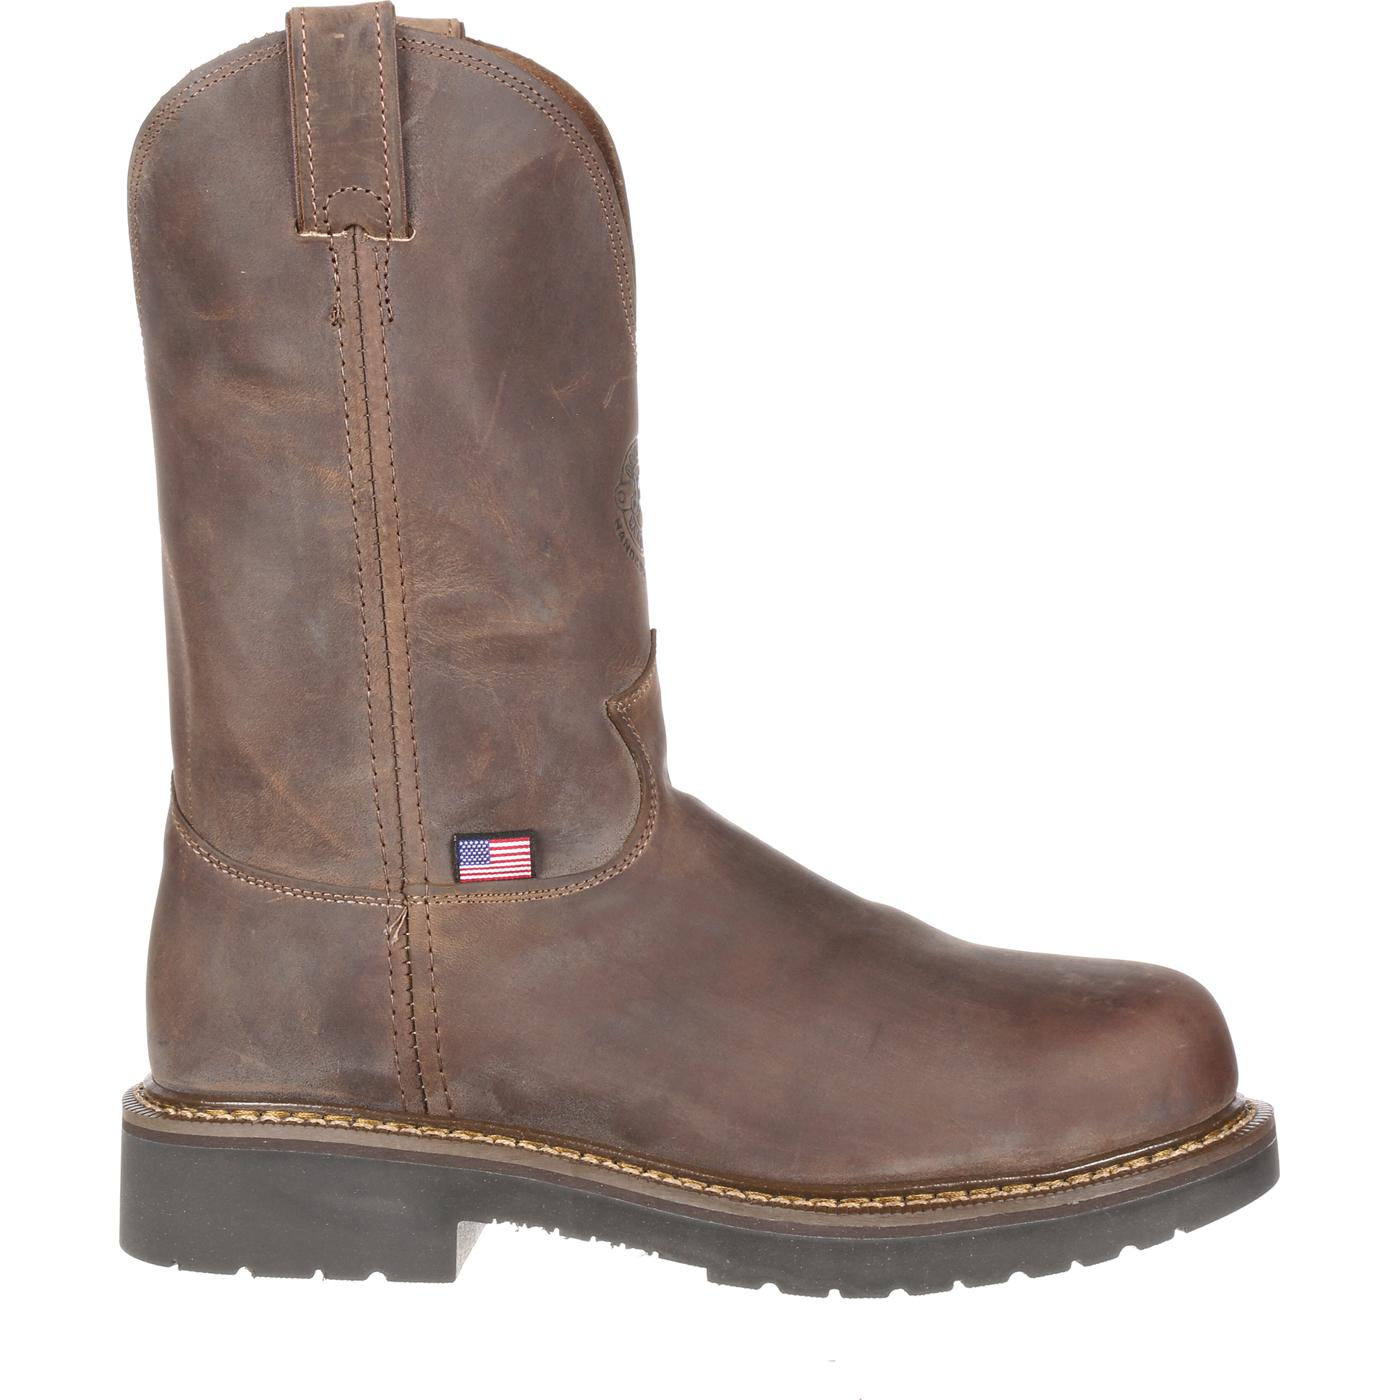 Discounts average $12 off with a Lehigh Outfitters promo code or coupon. 40 Lehigh Outfitters coupons now on RetailMeNot. Lehigh Outfitters Coupon Codes. Sort By: Popularity. Newest. Ending Soon. Add Favorite. $23 Off Giant by Georgia Boot Malden Lace-Up Work Shoe plus Free Shipping.